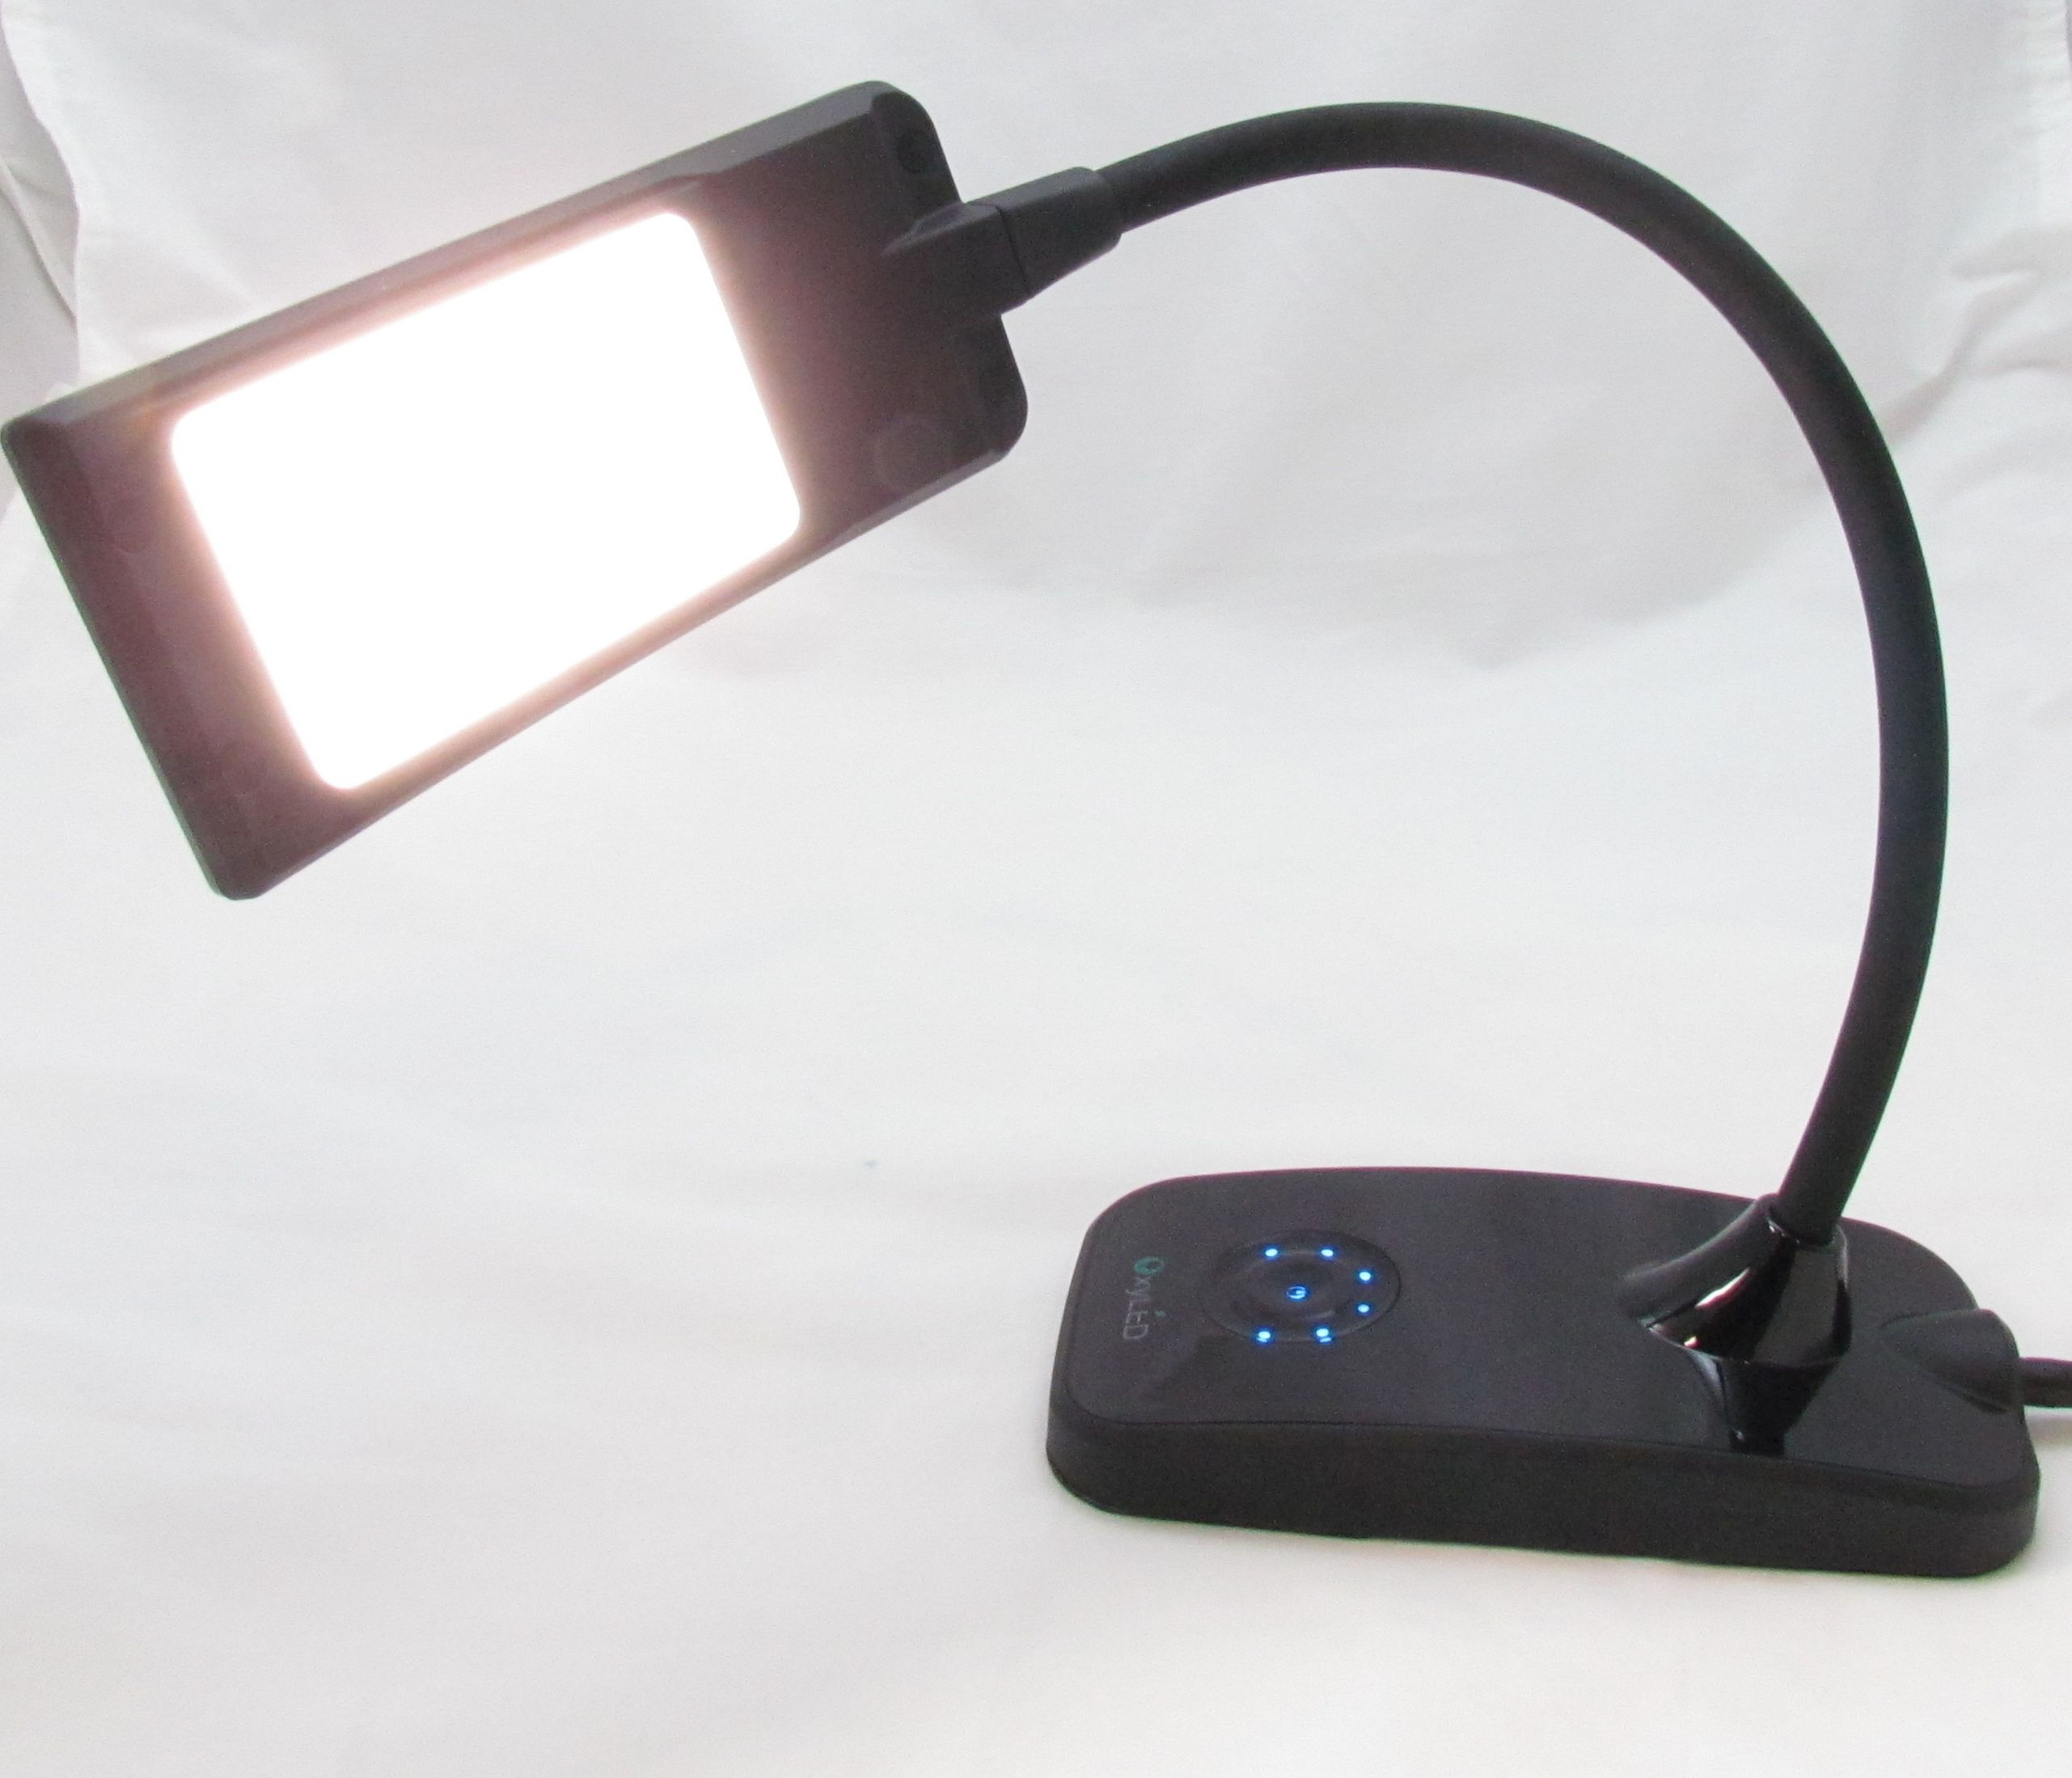 Best ideas about Bright Desk Lamp . Save or Pin OxyLED T120 Dimmable Eye care LED Desk Lamp Now.